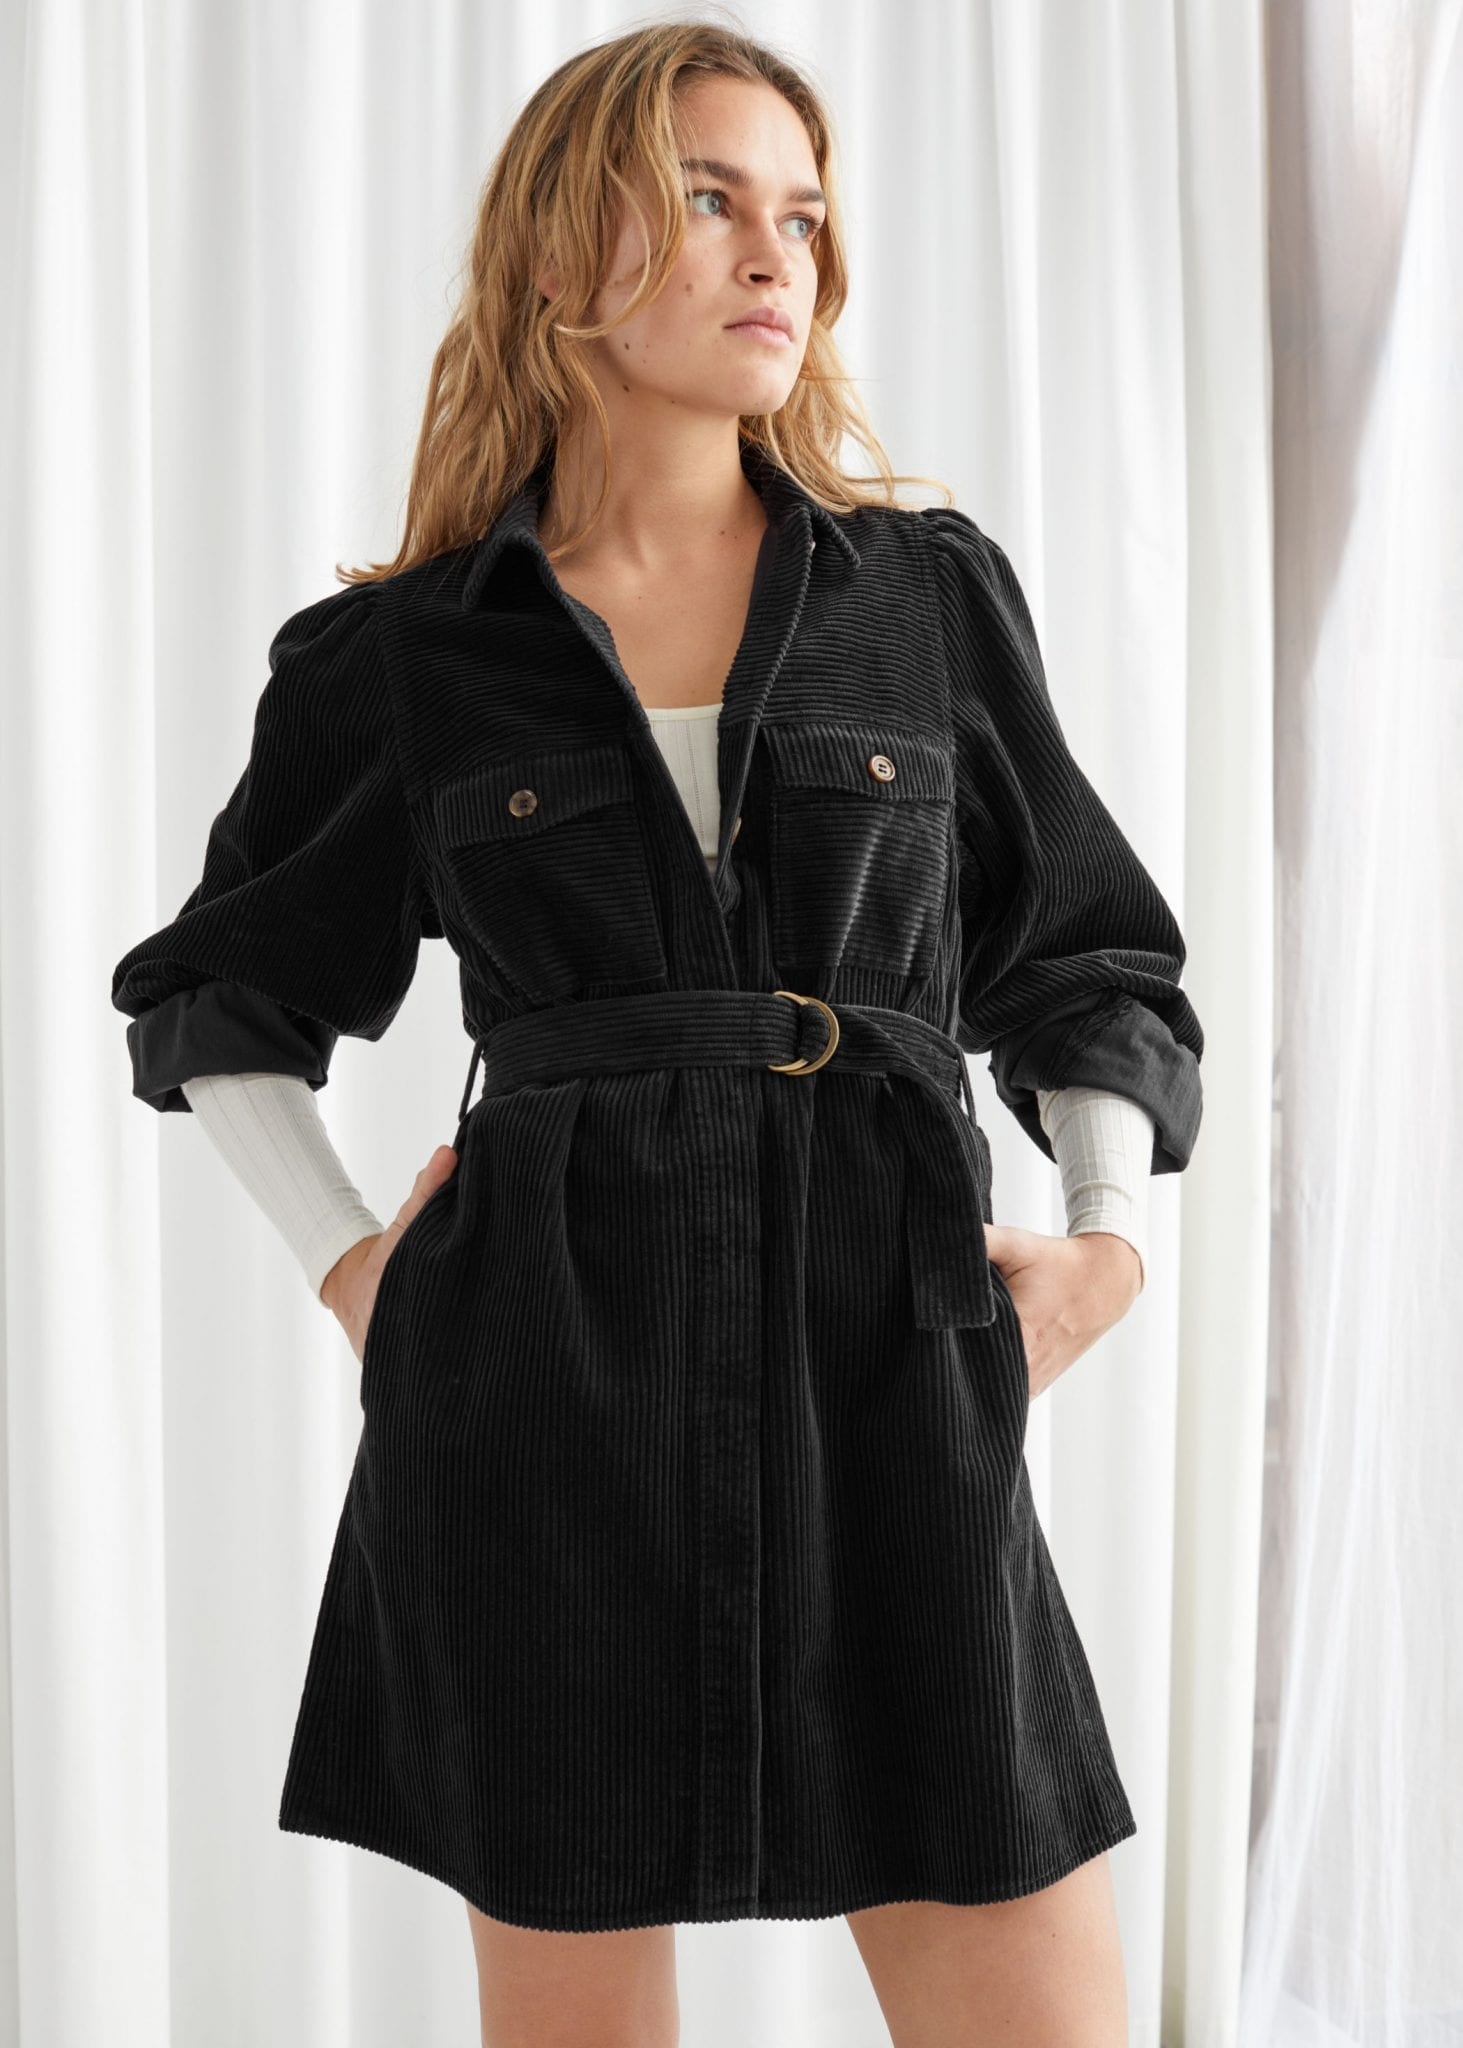 & OTHER STORIES Belted Corduroy Mini Dress